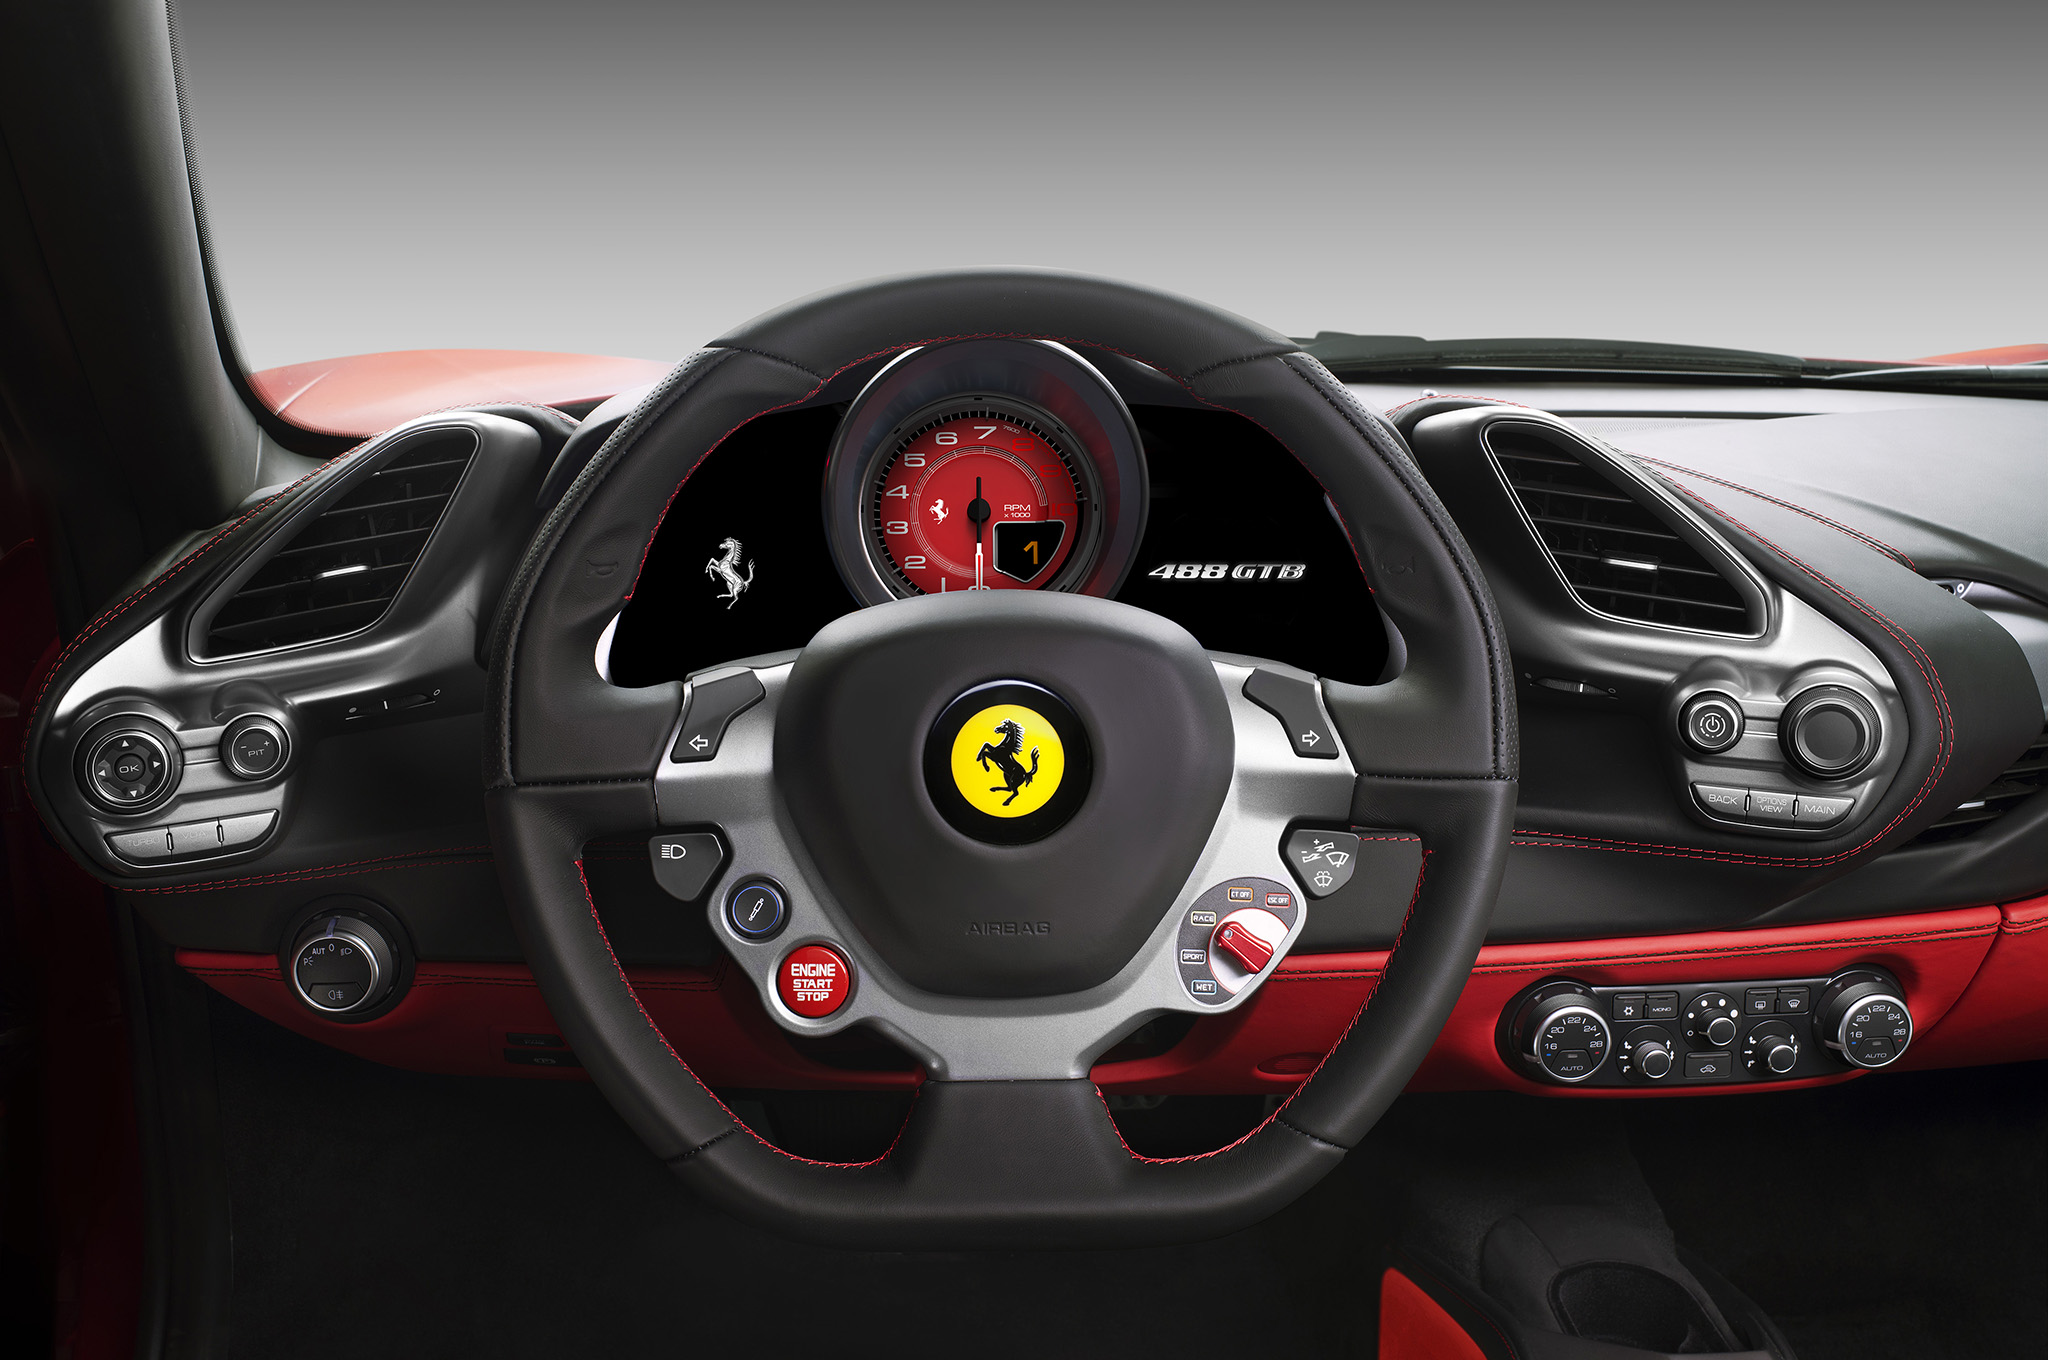 gallardo car at speed high drifting rent racing ferrari zero in would be to las ride which experience and most new excited vegas drive lamborghini you along exotics times